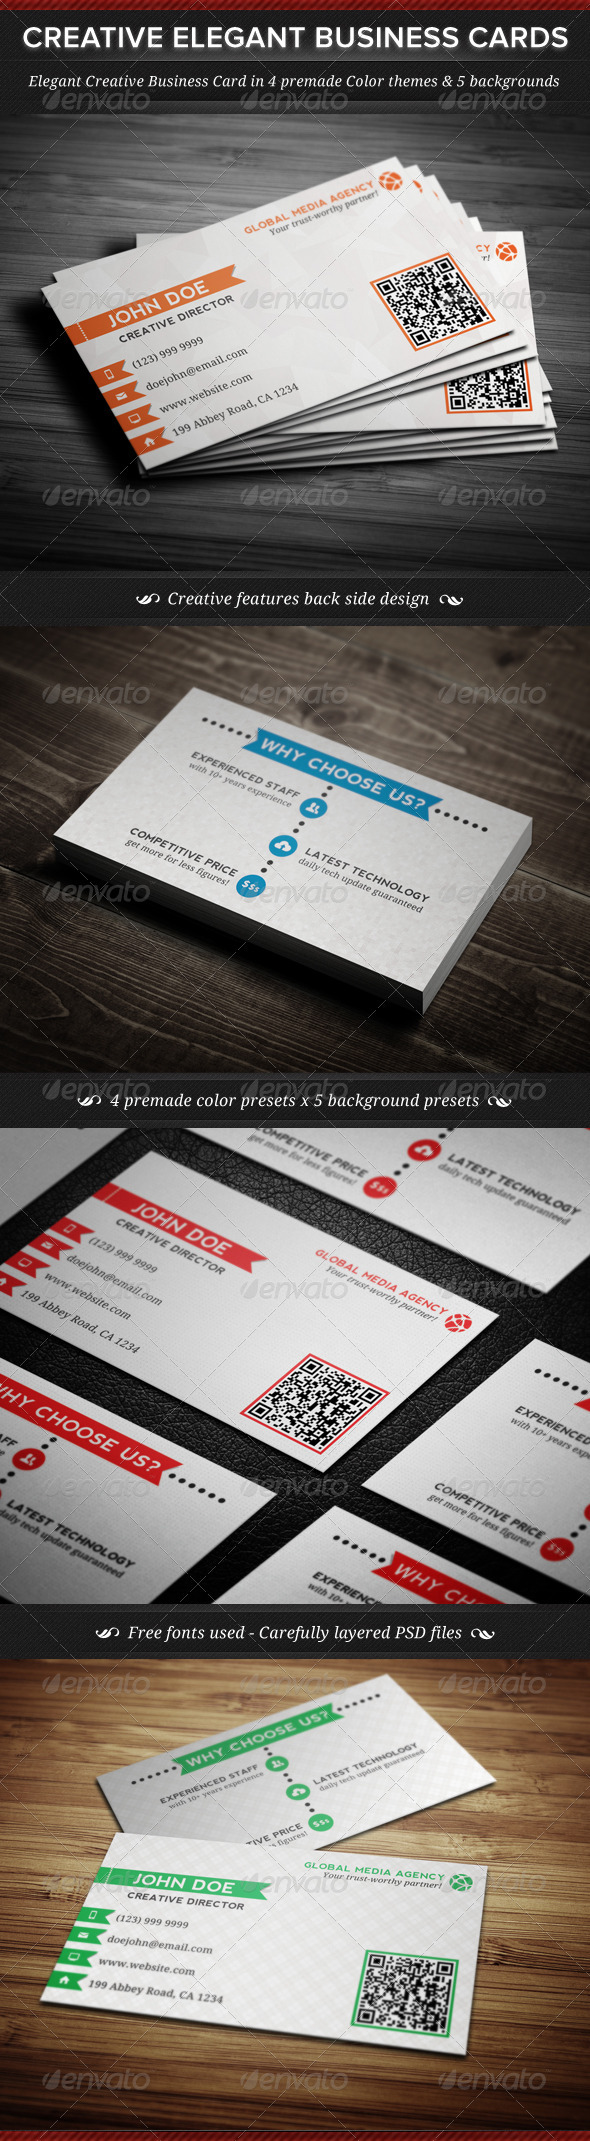 GraphicRiver Elegant Creative Business Cards Template 3959360